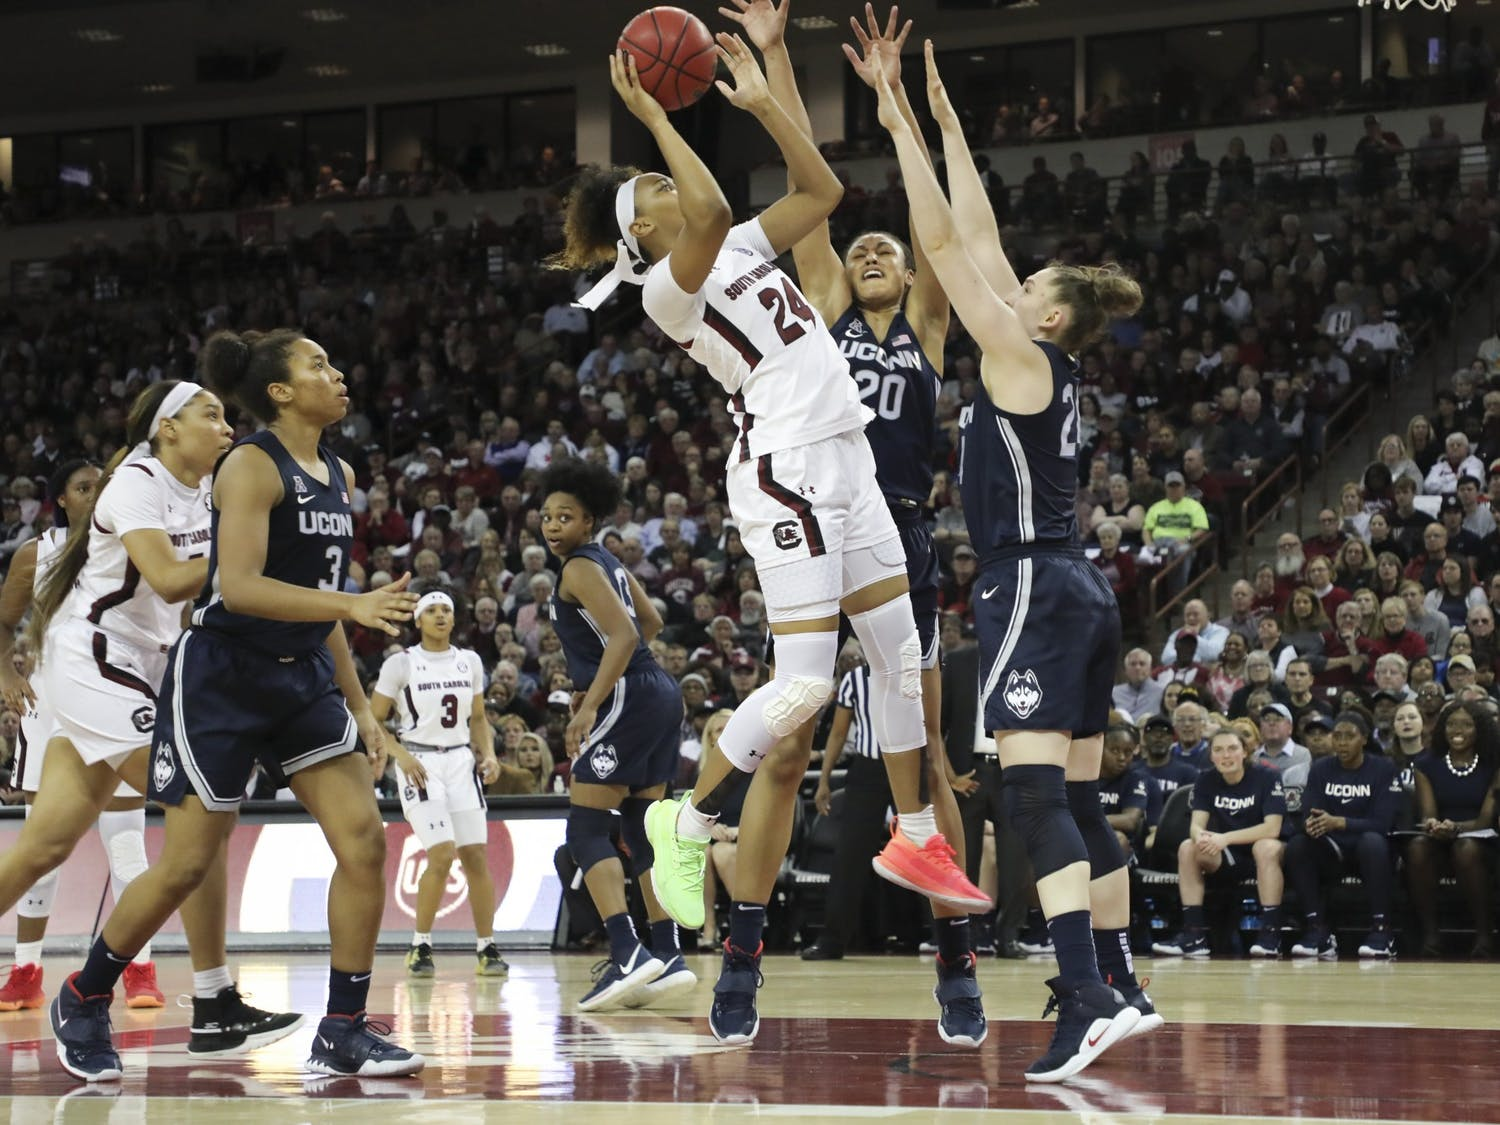 Junior guard Lele Grissett goes up for a shot while UConn players attempt to block her. Grissett scored 2 points against the Huskies.